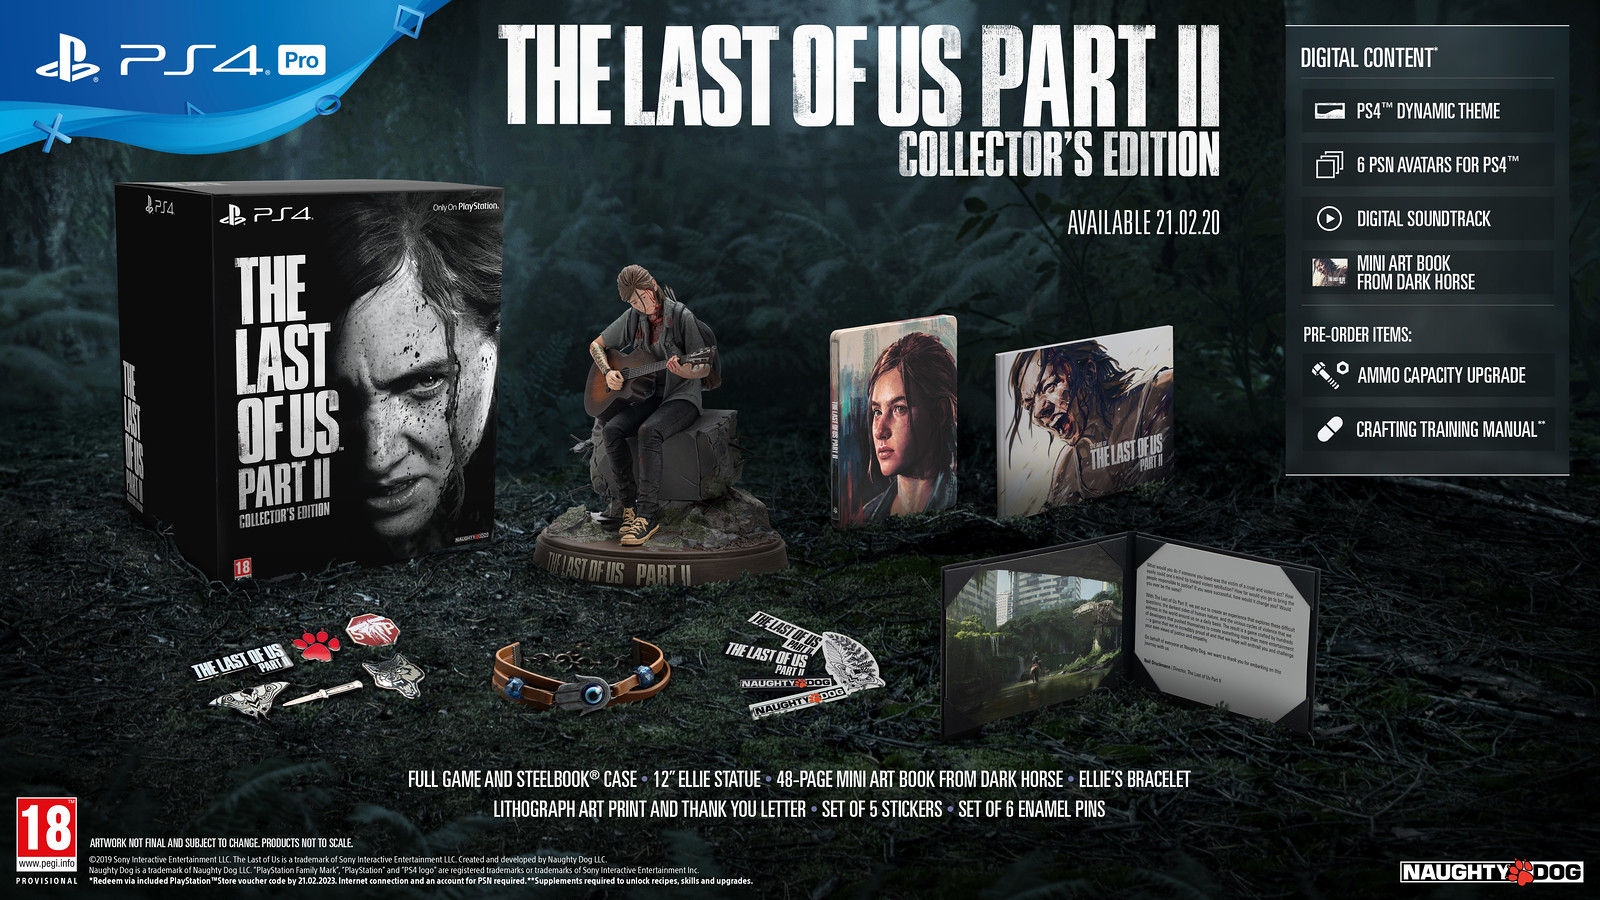 The Last of Us Part II releases 21st February 2020 watch the 1600x900